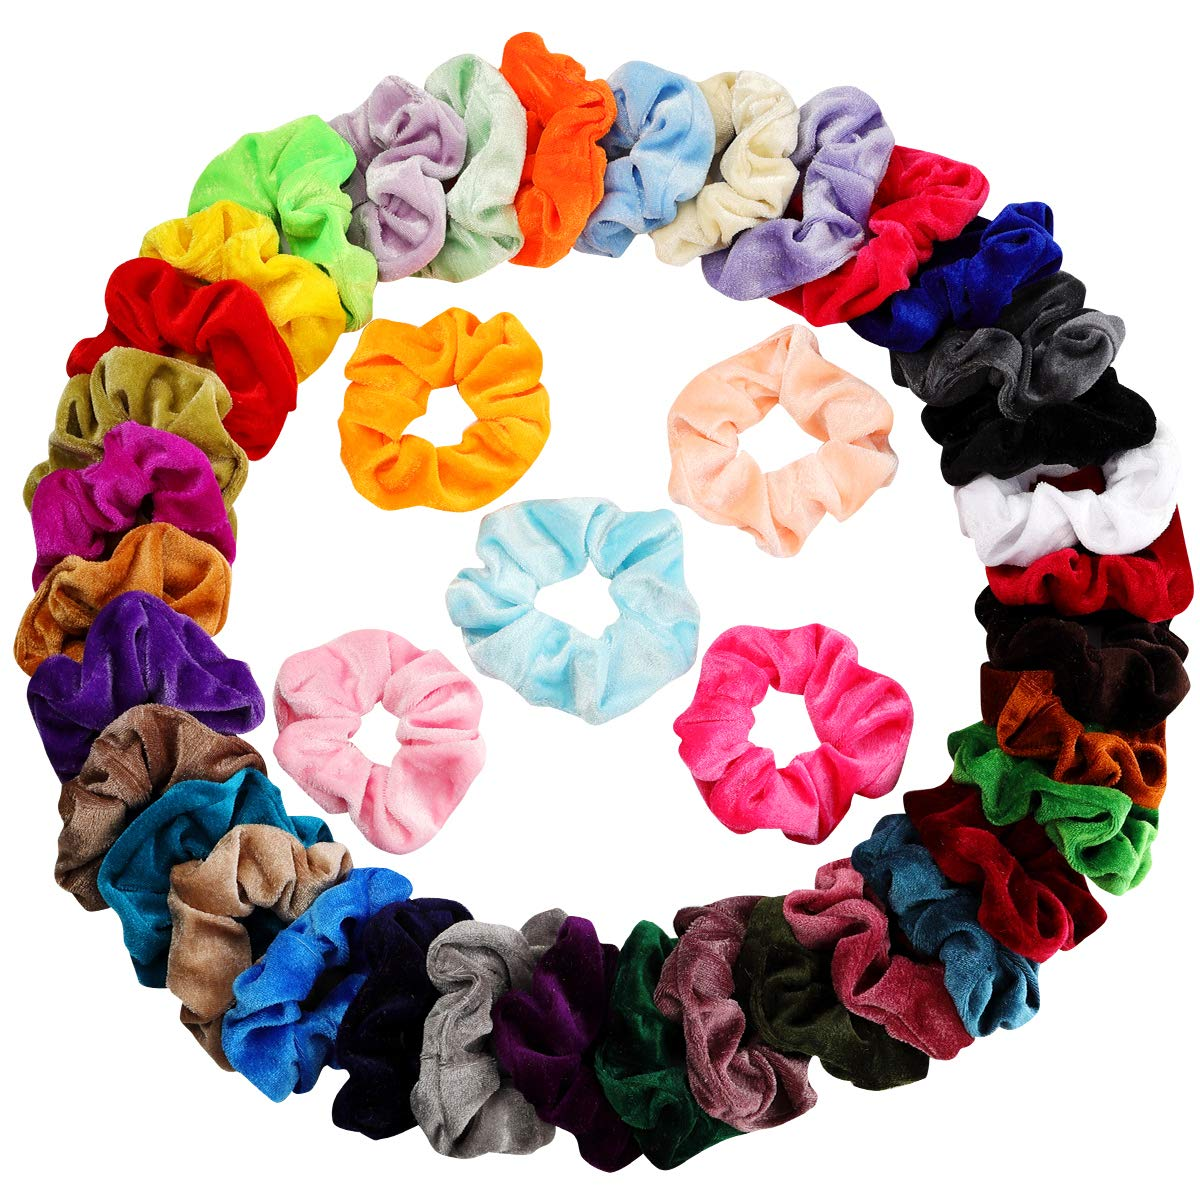 Mandydov 40pcs Hair Scrunchies Velvet Elastic Hair Bands Scrunchy Hair Ties Ropes 40 Pack Scrunchies for Women or Girls Hair Accessories - 40 Assorted Colors Scrunchies by Mandydov (Image #3)